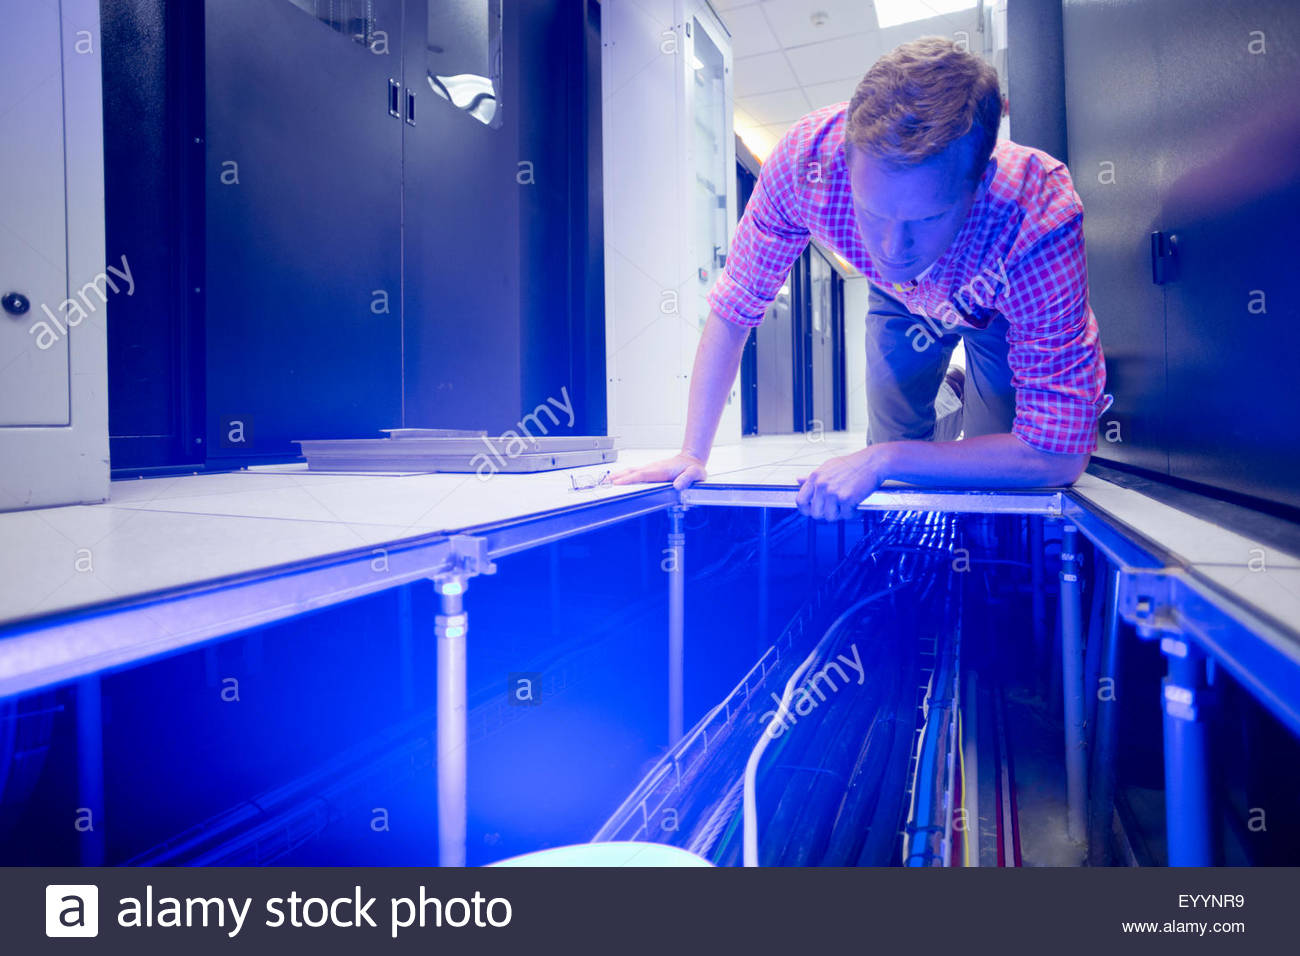 Technician checking cabling under floor of data centre server room - Stock Image